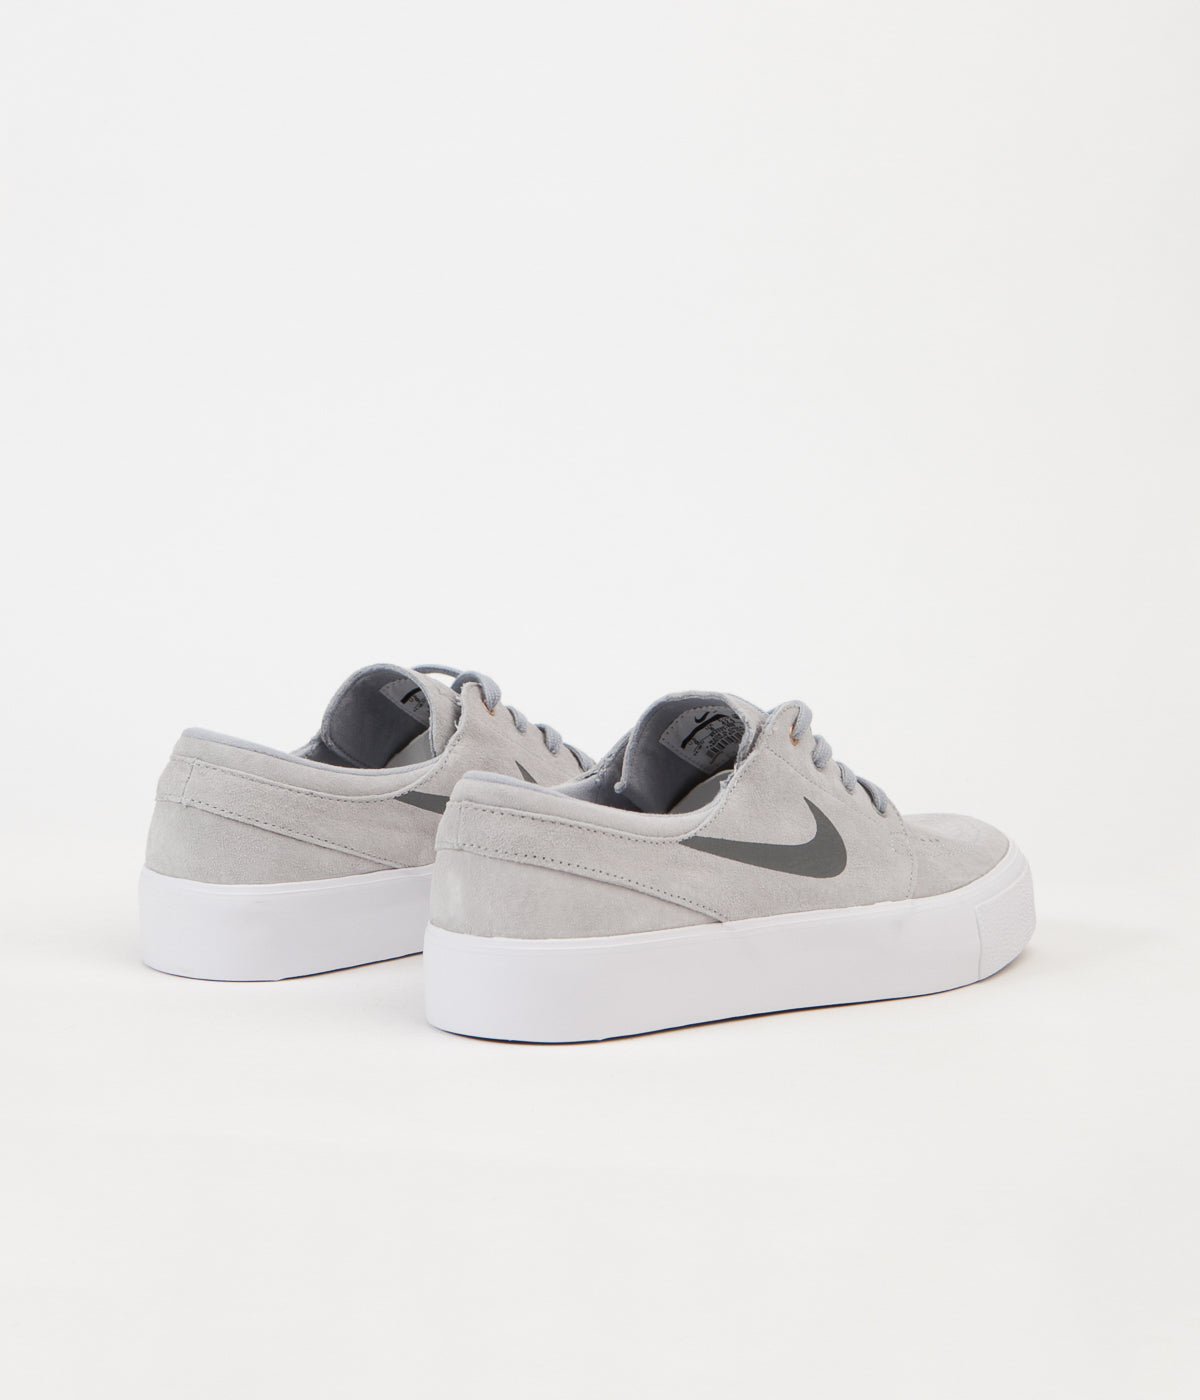 ... Nike SB Stefan Janoski HT Shoes - Wolf Grey   Dark Grey - Metallic Gold  ... 2ba8414ce